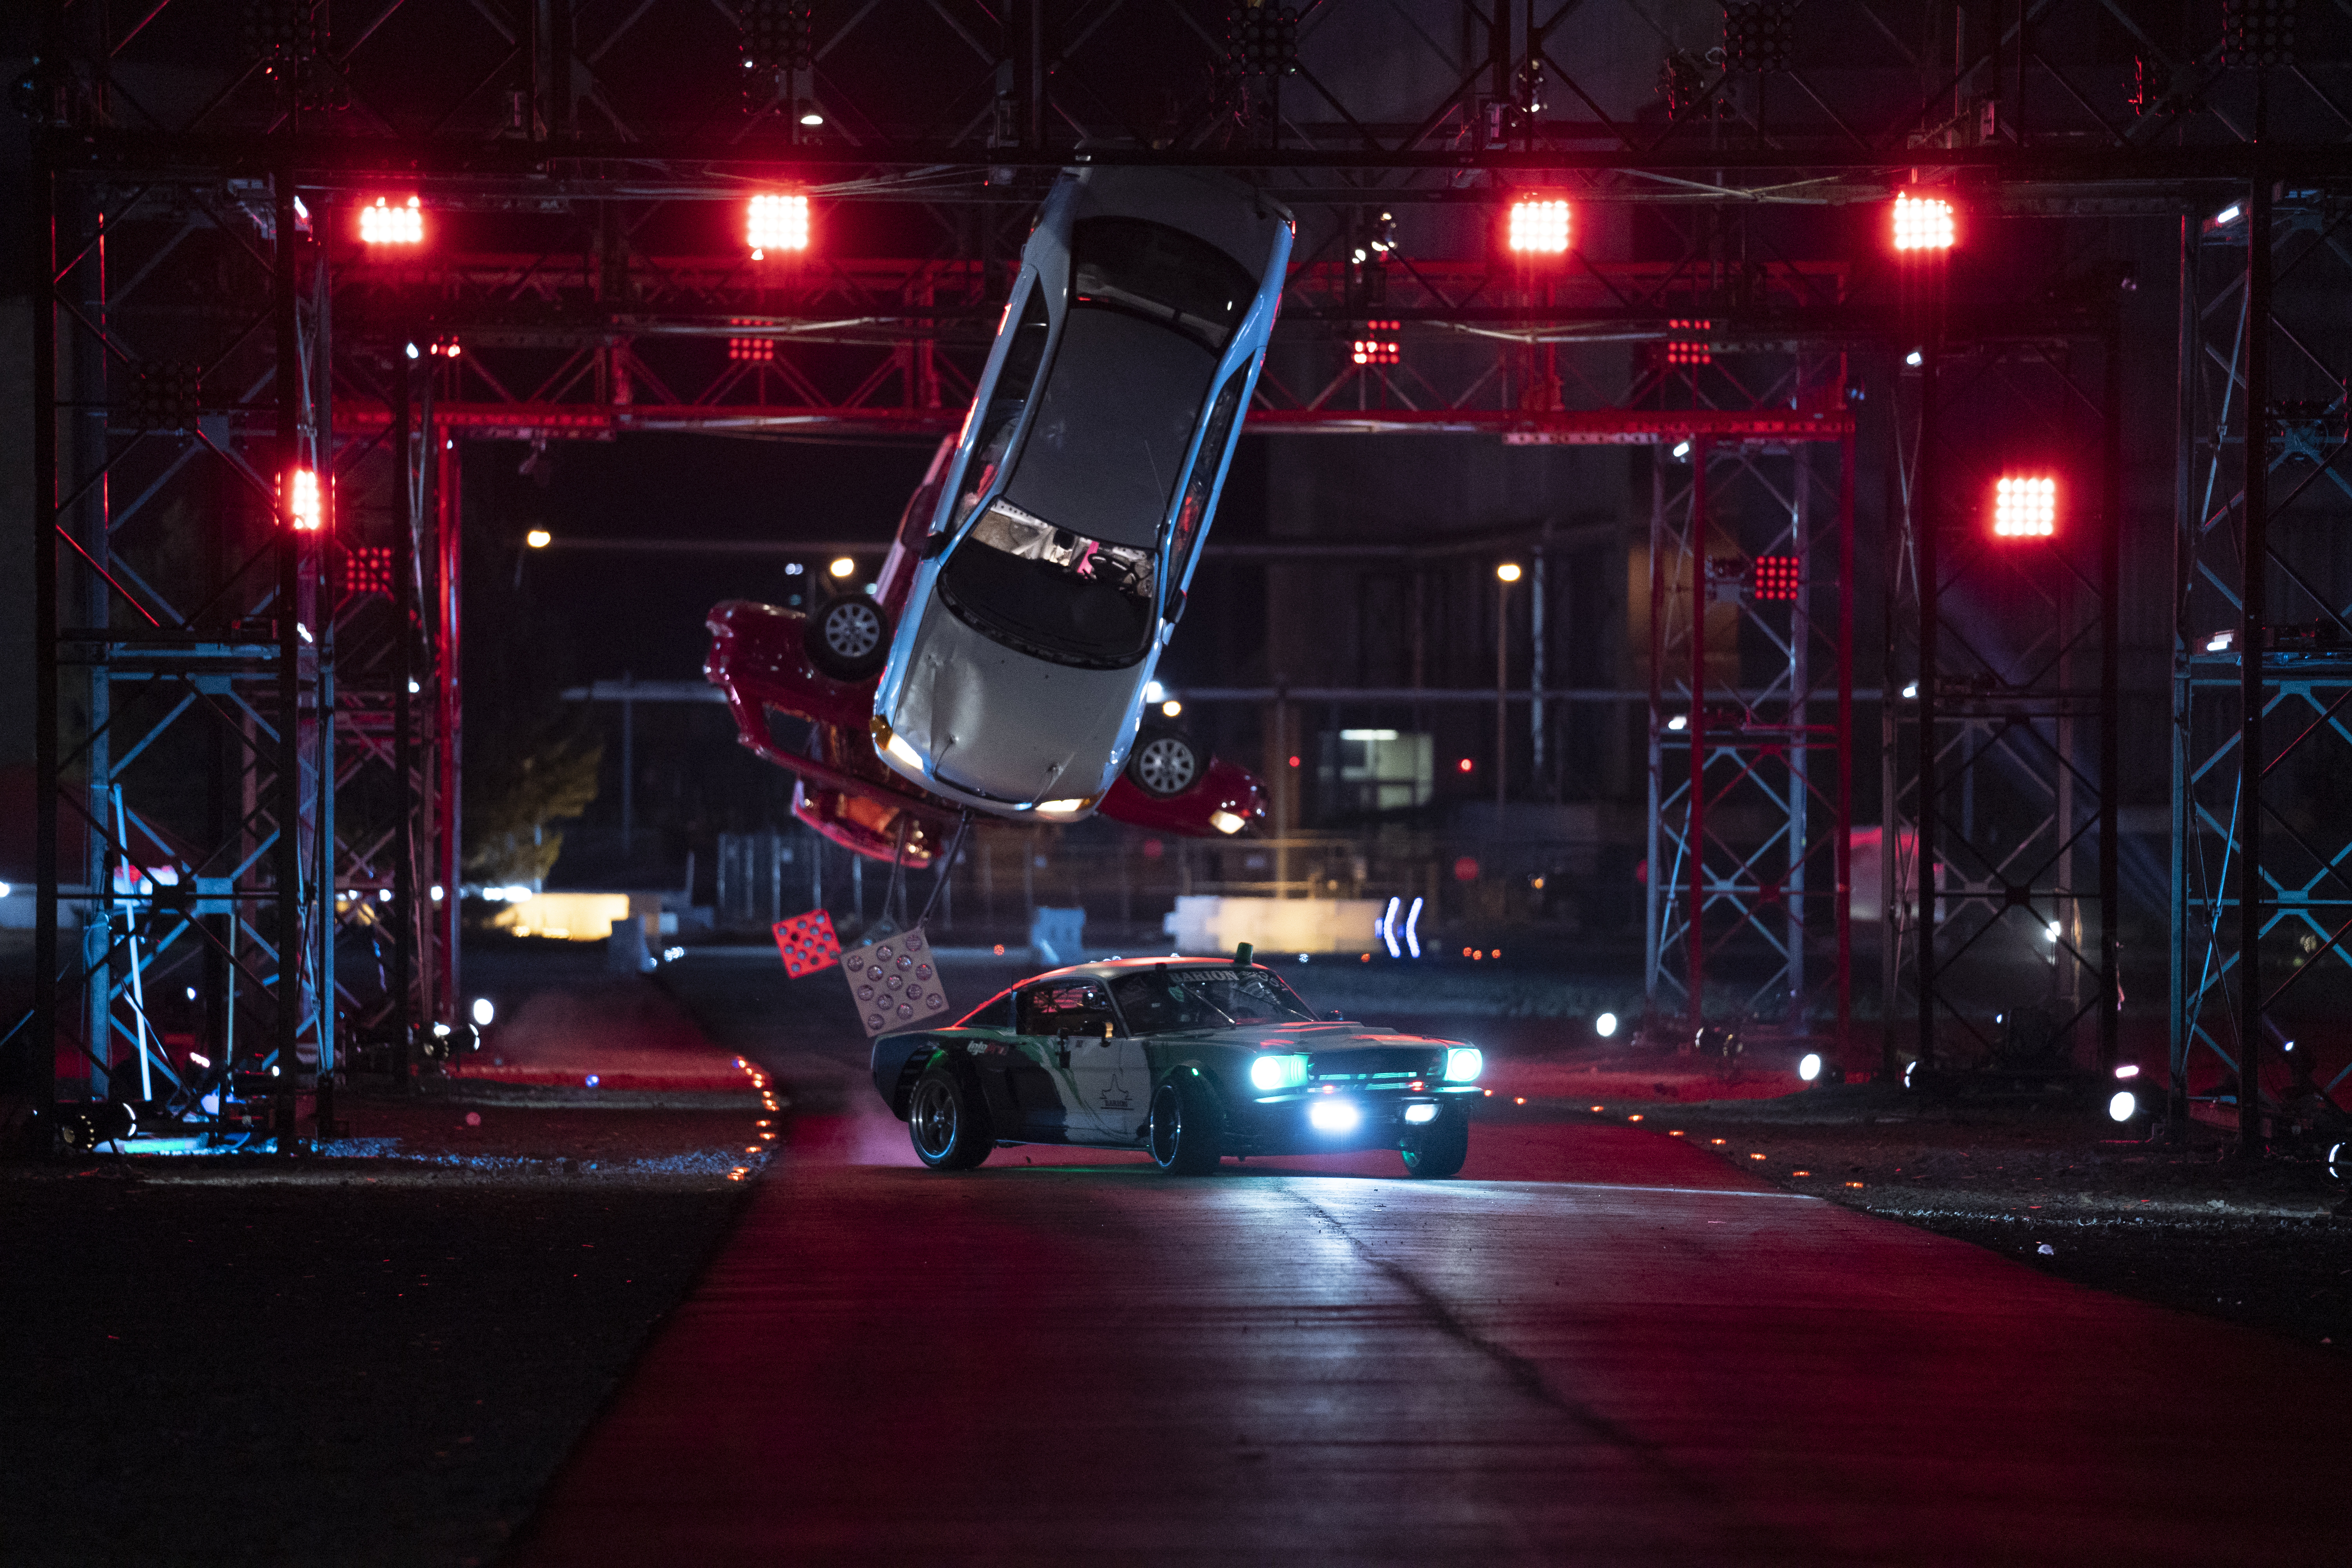 DIY-er and mechanic for a Formula Drift Pro1 driver competes in Hyperdrive